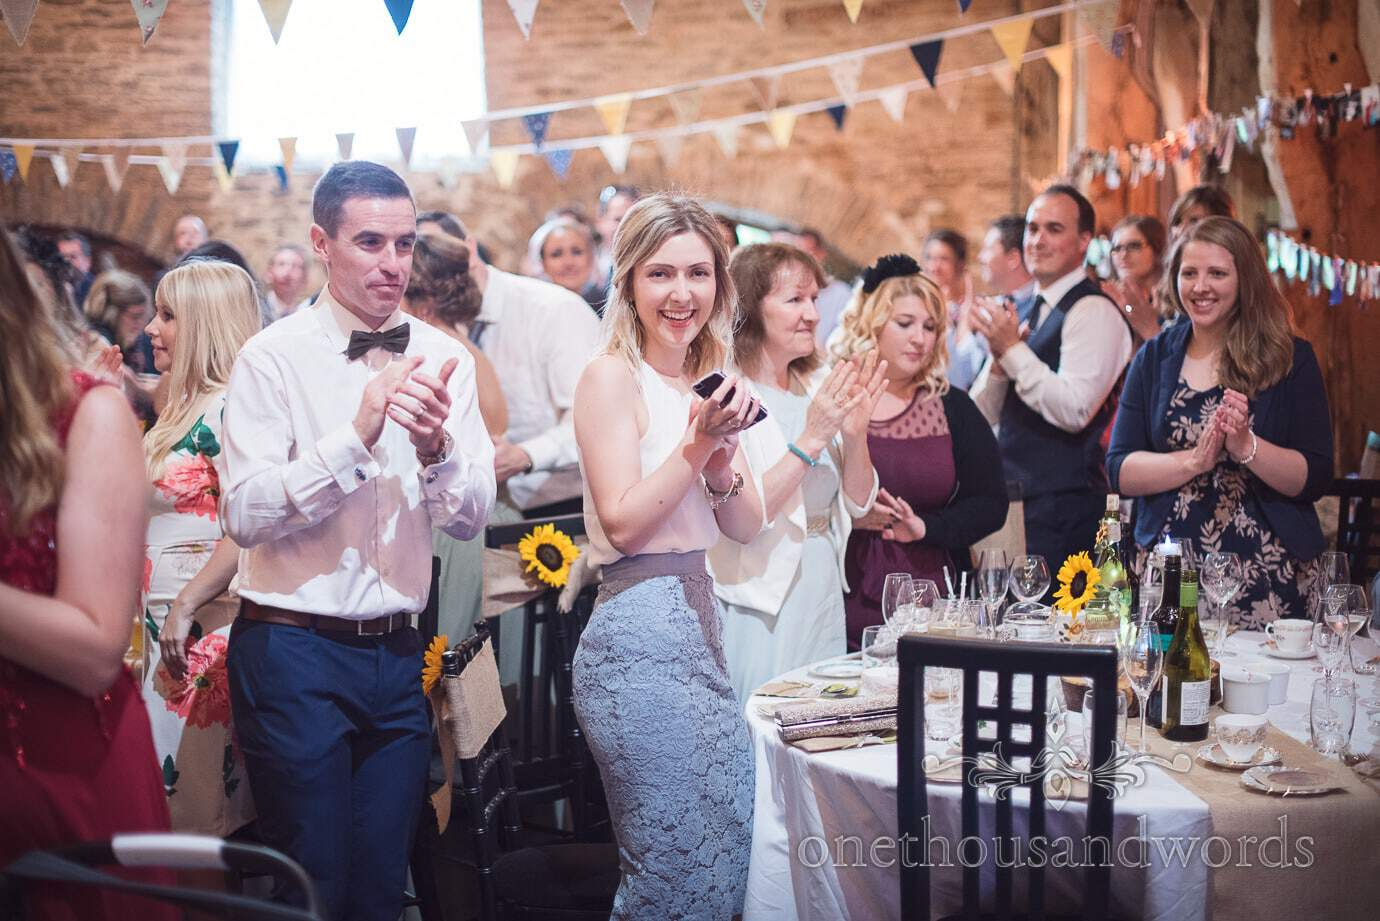 Guests stand and applaud as newly-weds enter rustic barn wedding venue in Dorset